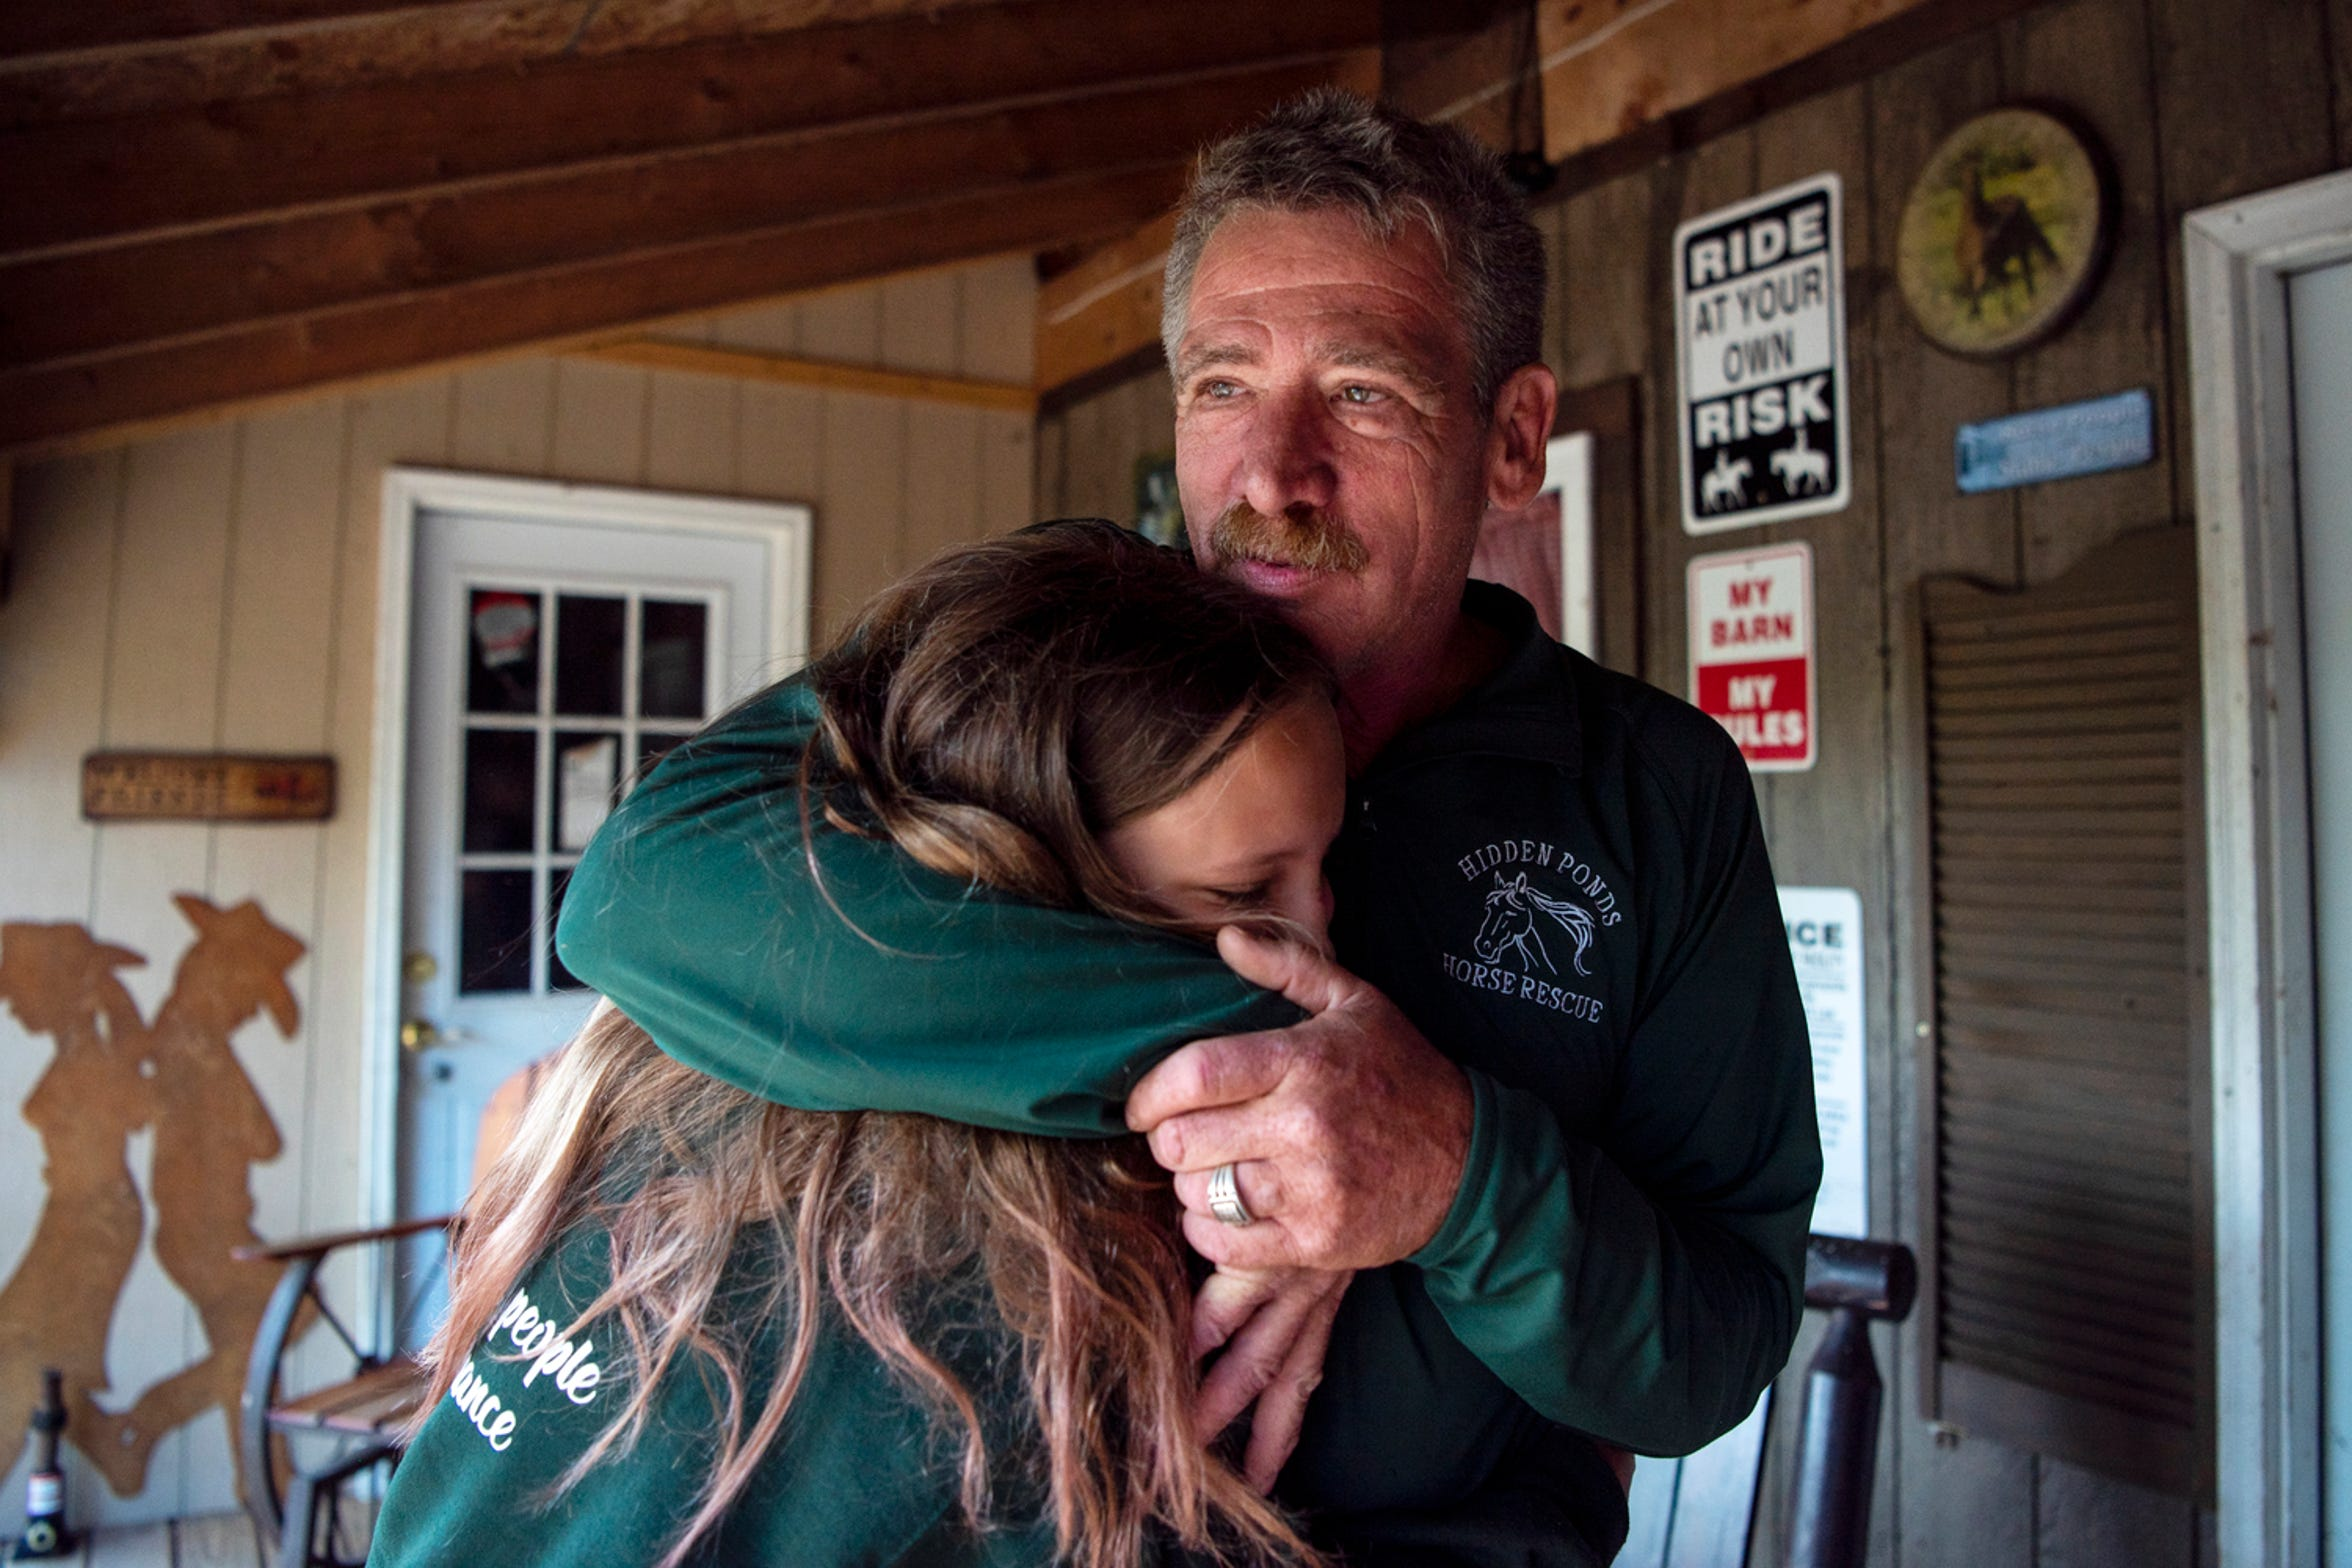 Jeff Friend and Hadassah Bloom, 12, embrace on Saturday, Sept. 7, 2019 at Hidden Ponds Horse Rescue in Coldwater, Mich. Students refer to Friend, owner of Hidden Ponds, as Grandpa Jeff.